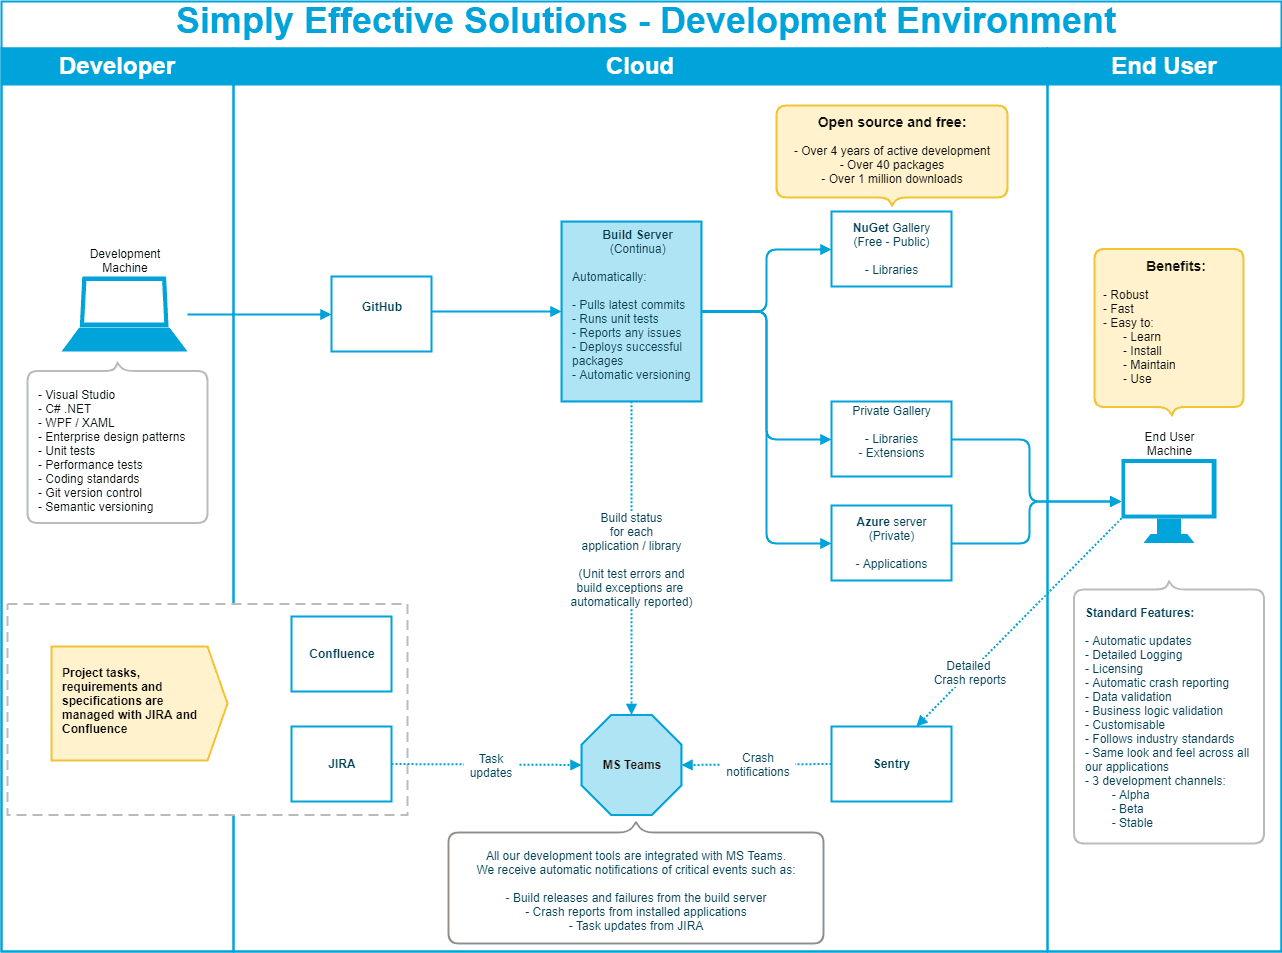 Simply Effective Solutions development environment